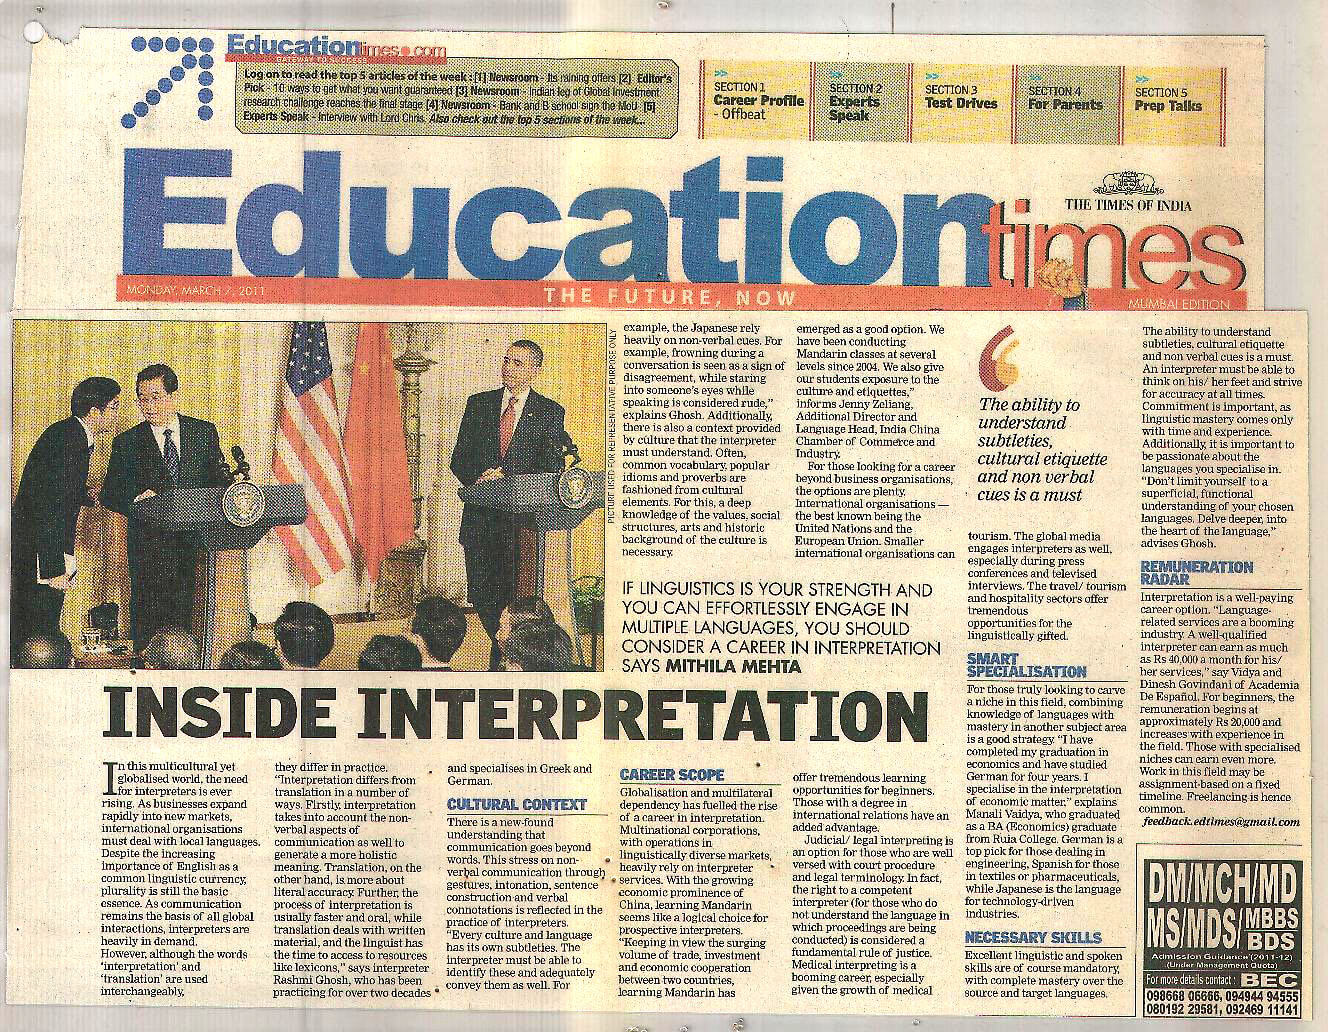 Education Times - Inside Interpretation